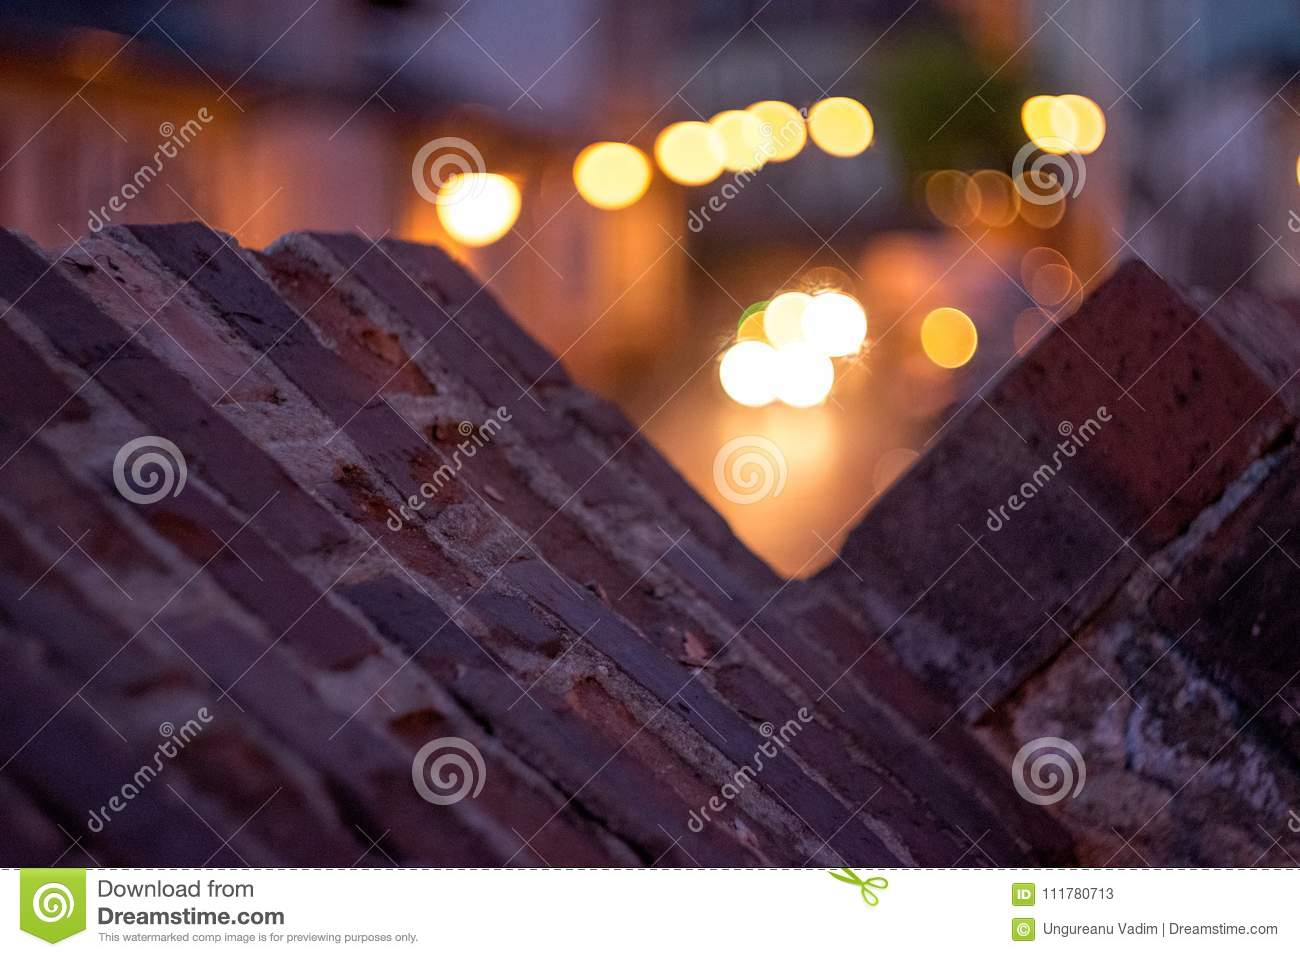 Shallow depth of field and close up of an medieval brick wall at sunrise with nice colors in background